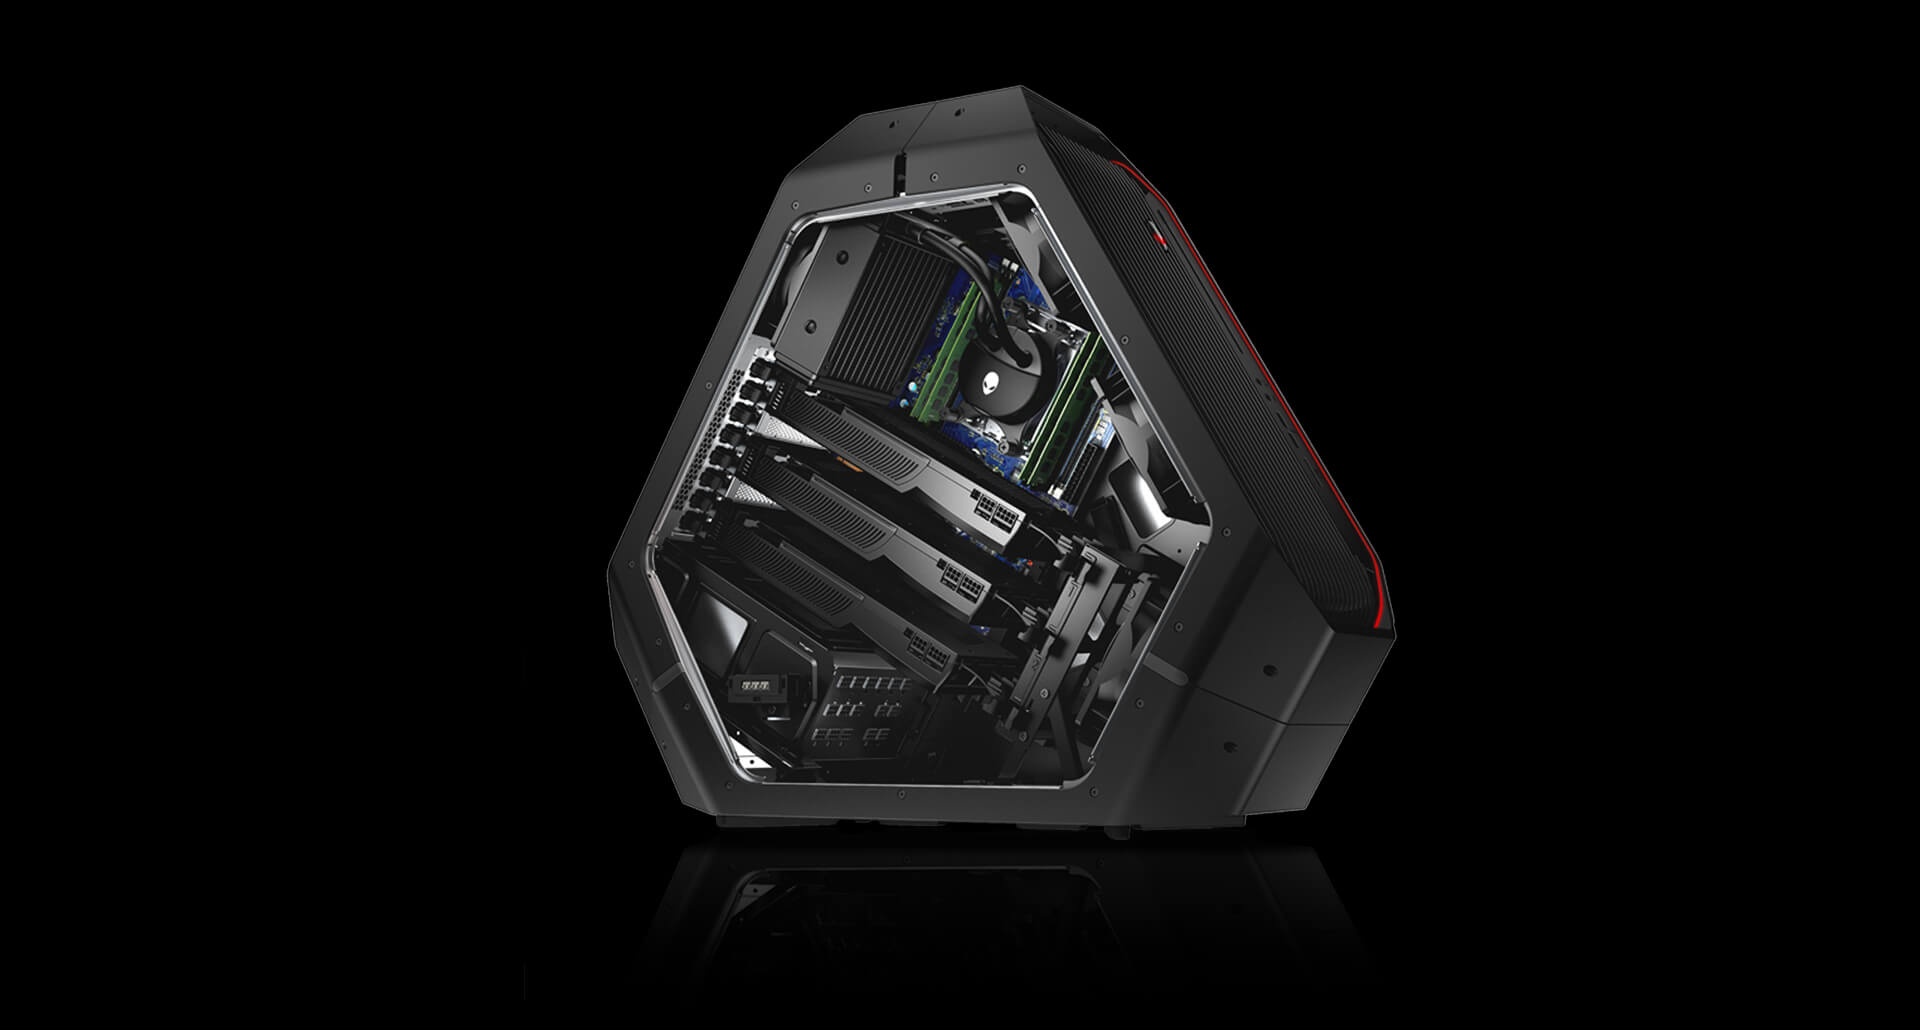 Alienware upgrades Area 51 PC for 8K applications and 'mega-tasking'